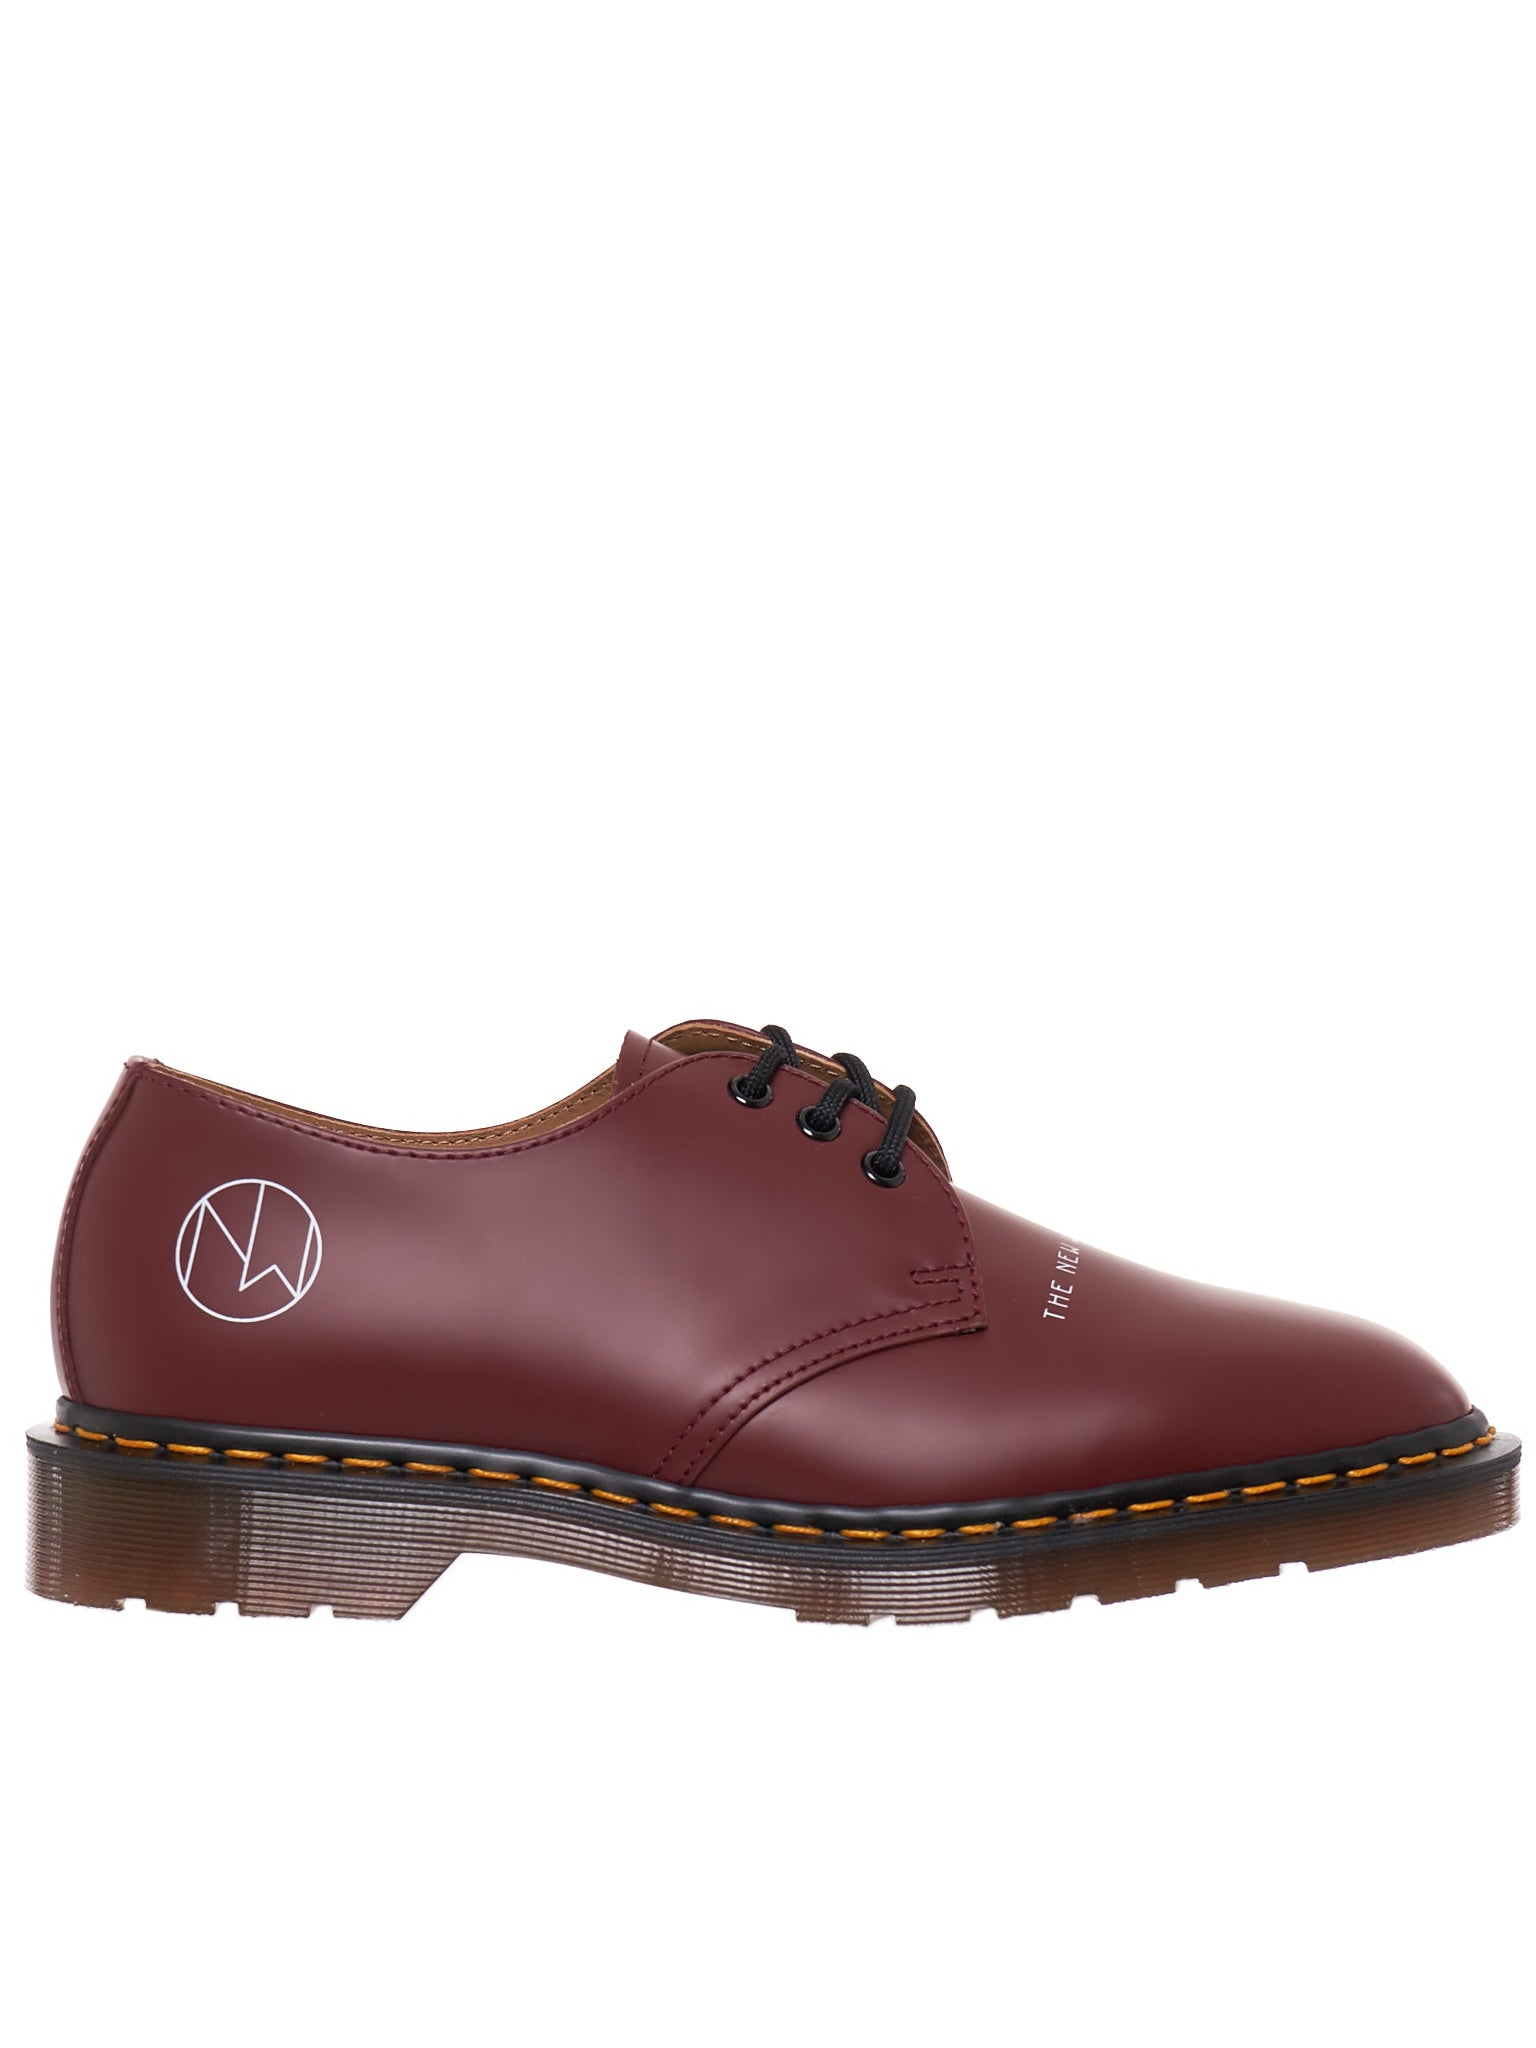 Undercover x Dr. Martens Derby - Hlorenzo Front